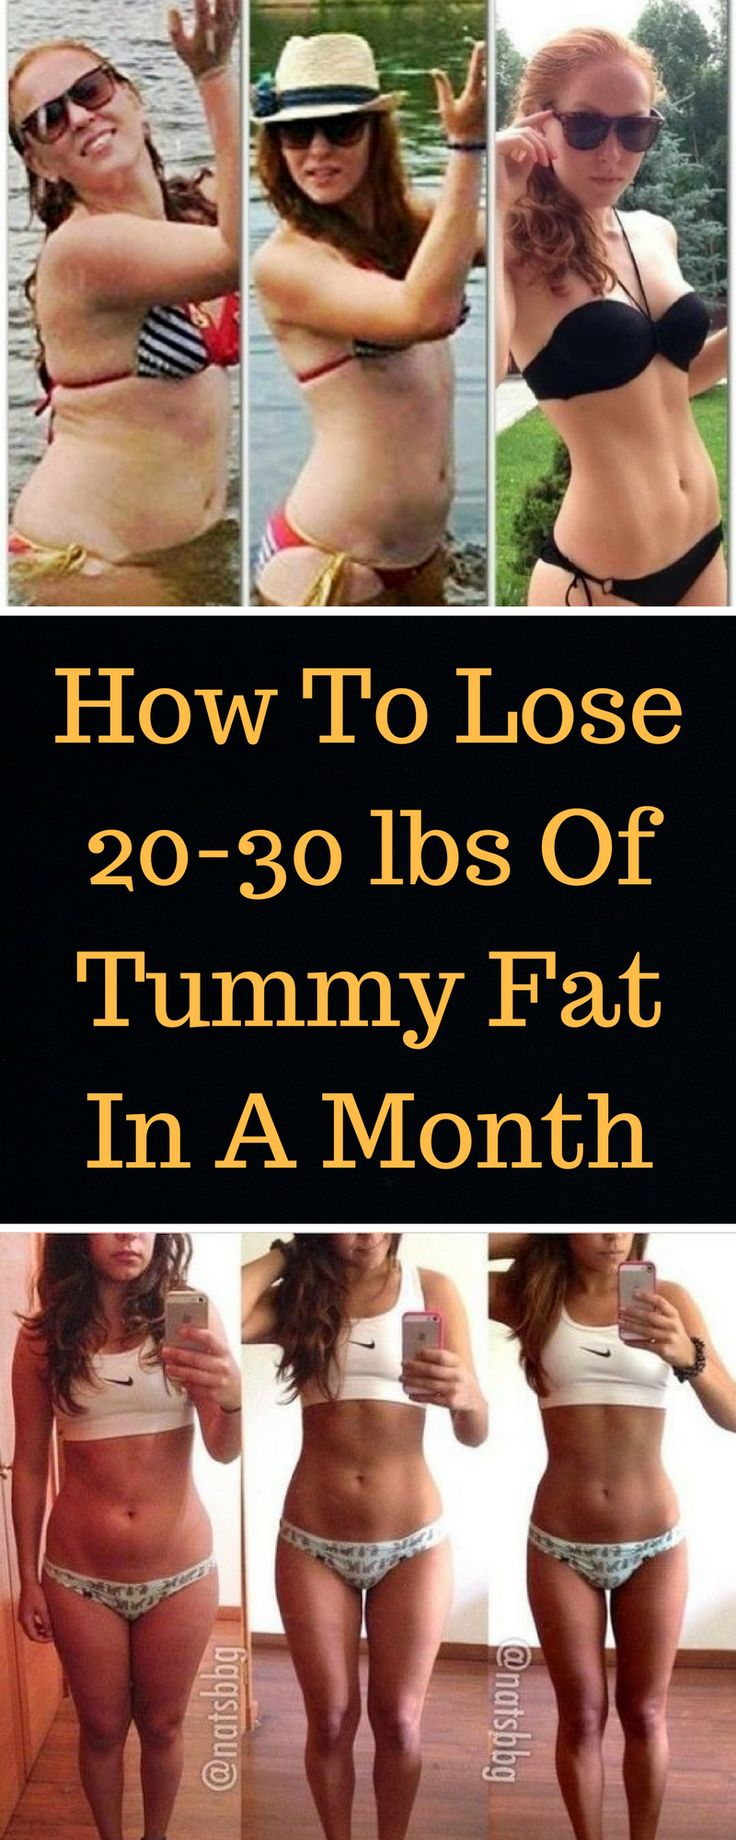 How long should i jog to lose belly fat